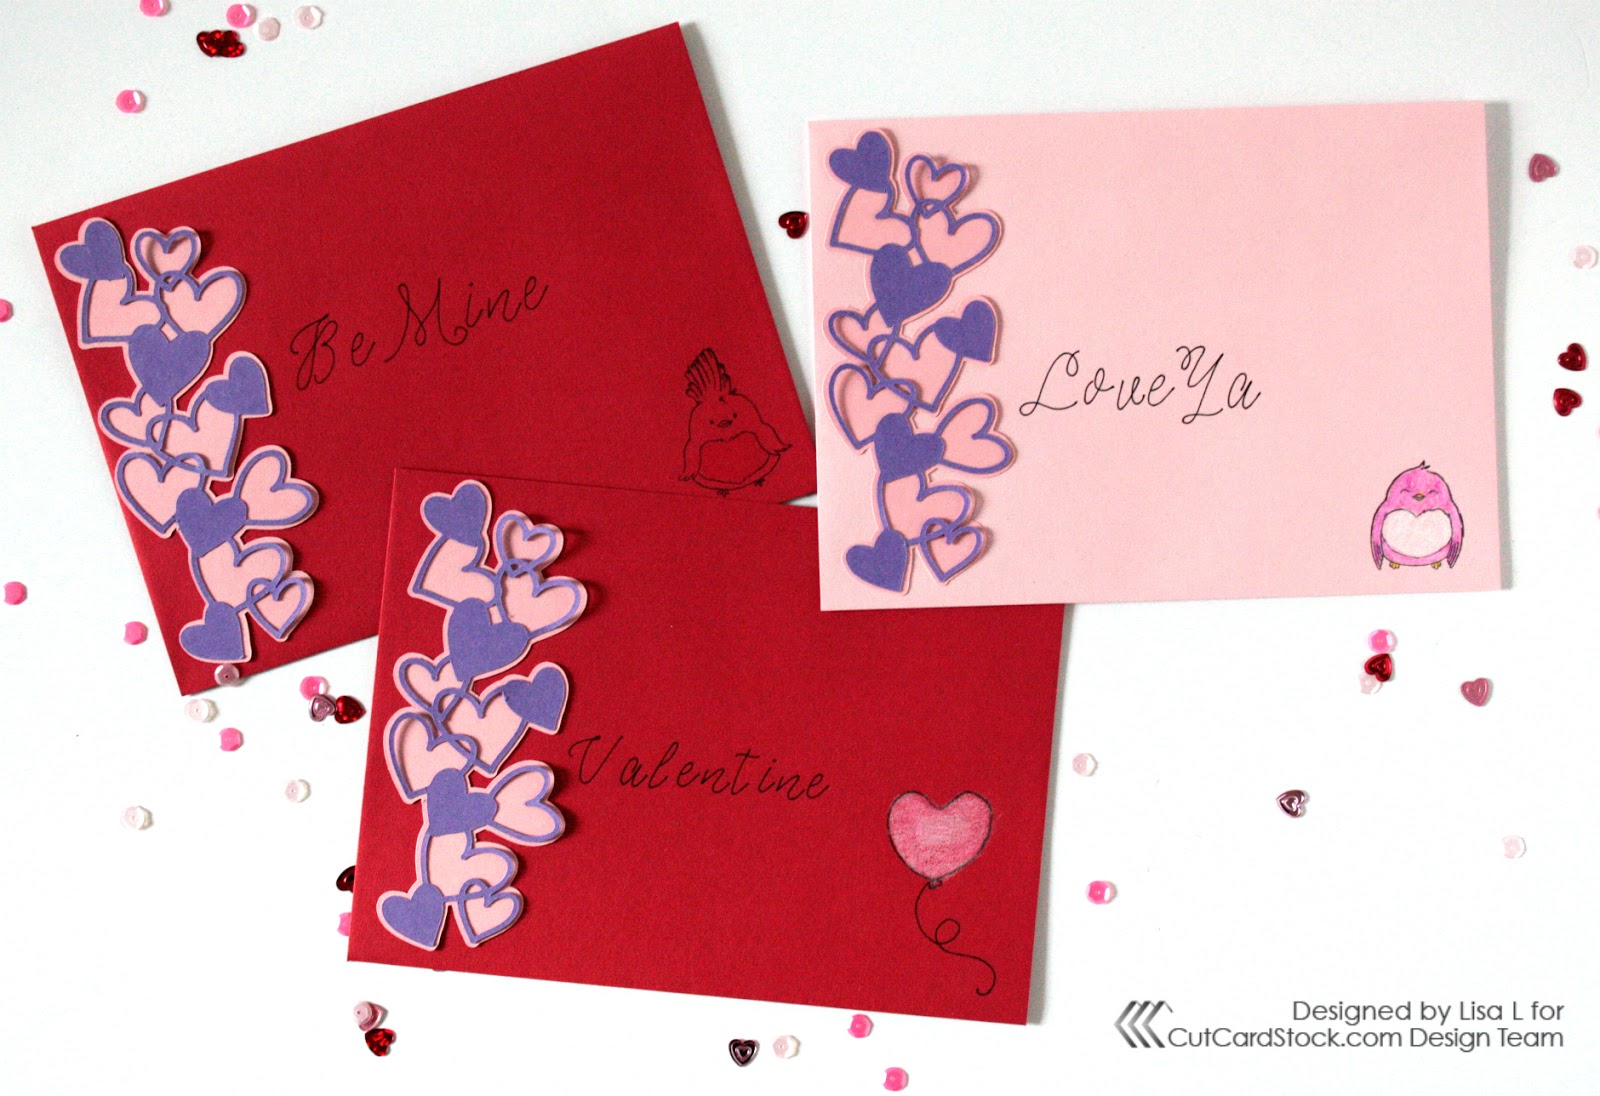 Decorating Envelopes With Your Cricut Machine Cutcardstock